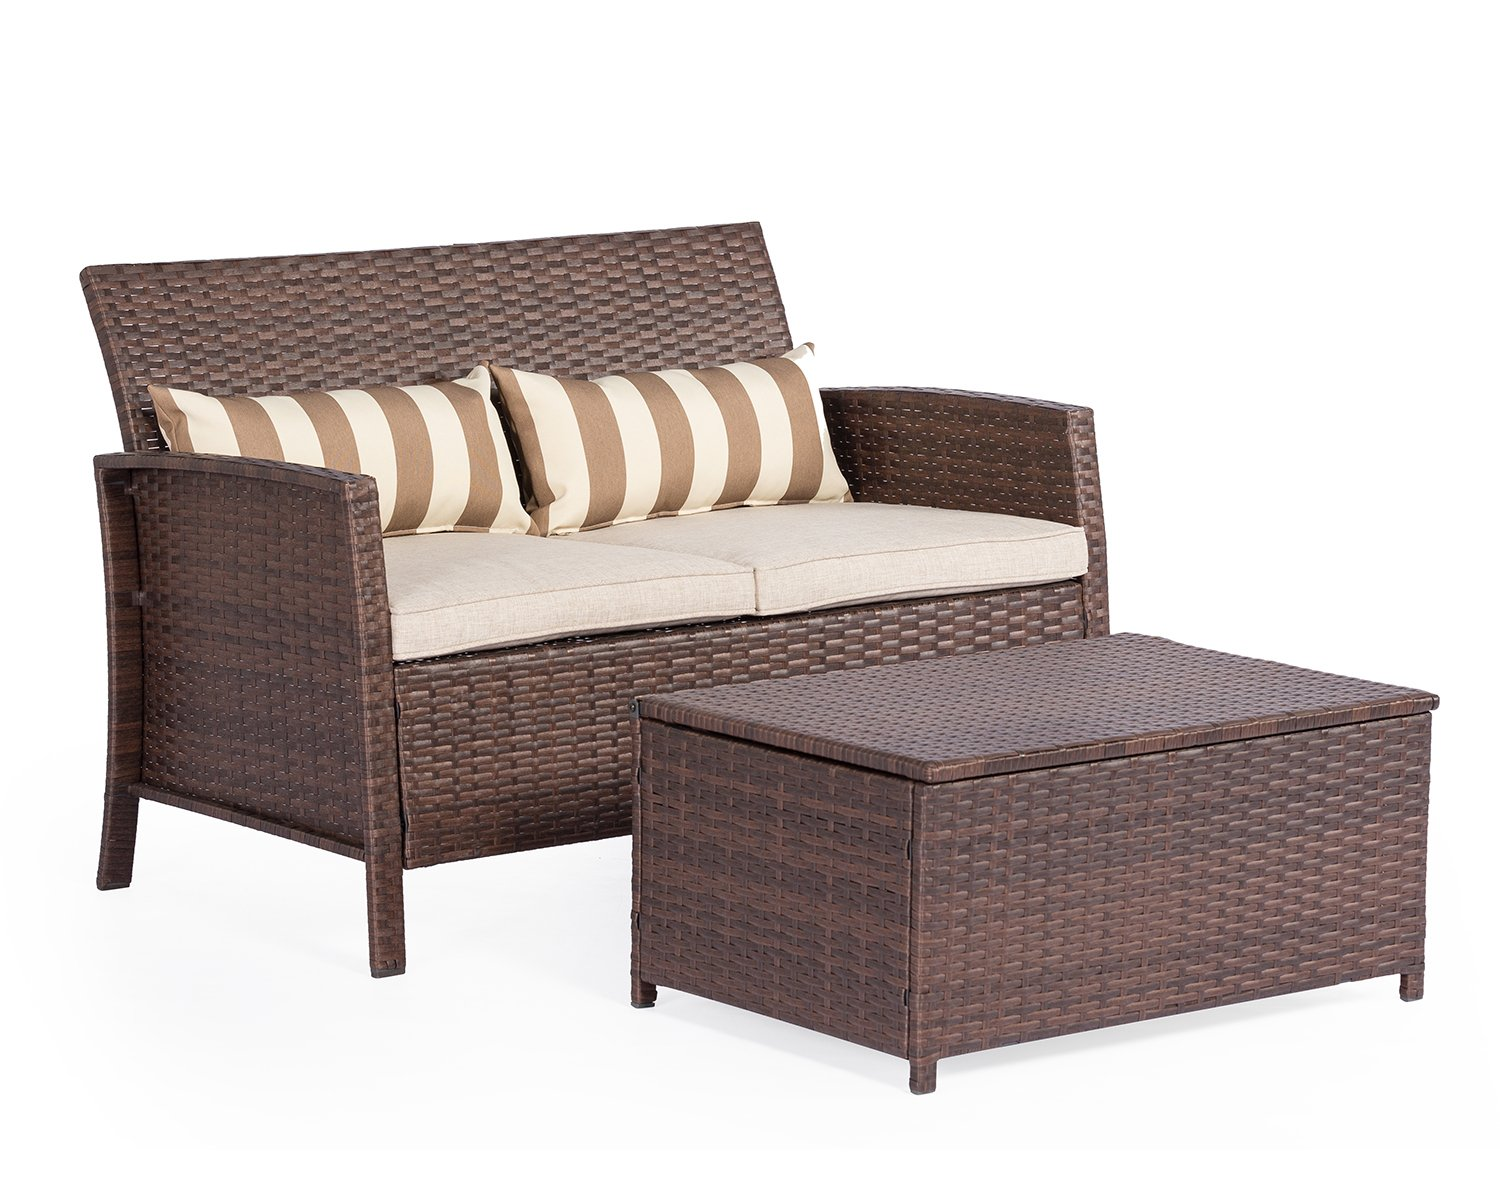 Solaura Outdoor Furniture Brown Wicker Patio Sofa (Seats 3) Light Brown Cushions & Classic Gold Stripe Throw Pillows Solaura Patio